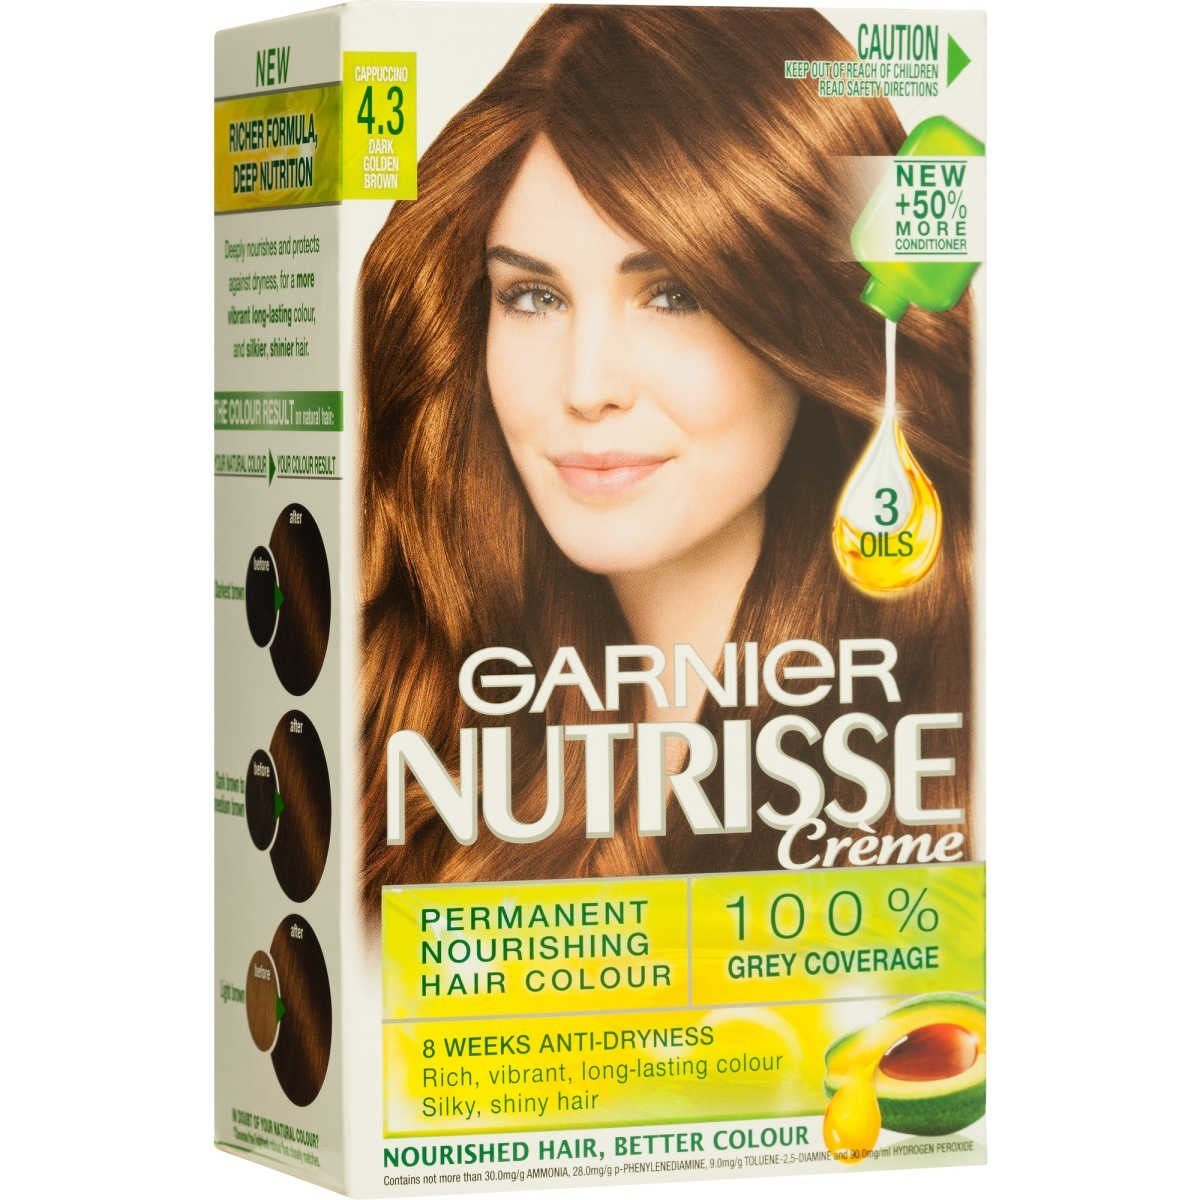 The Best Garnier Nutrisse Creme Permanent Nourishing Hair Colour 4 3 Cappuccino Dark Golden Brown Big W Pictures